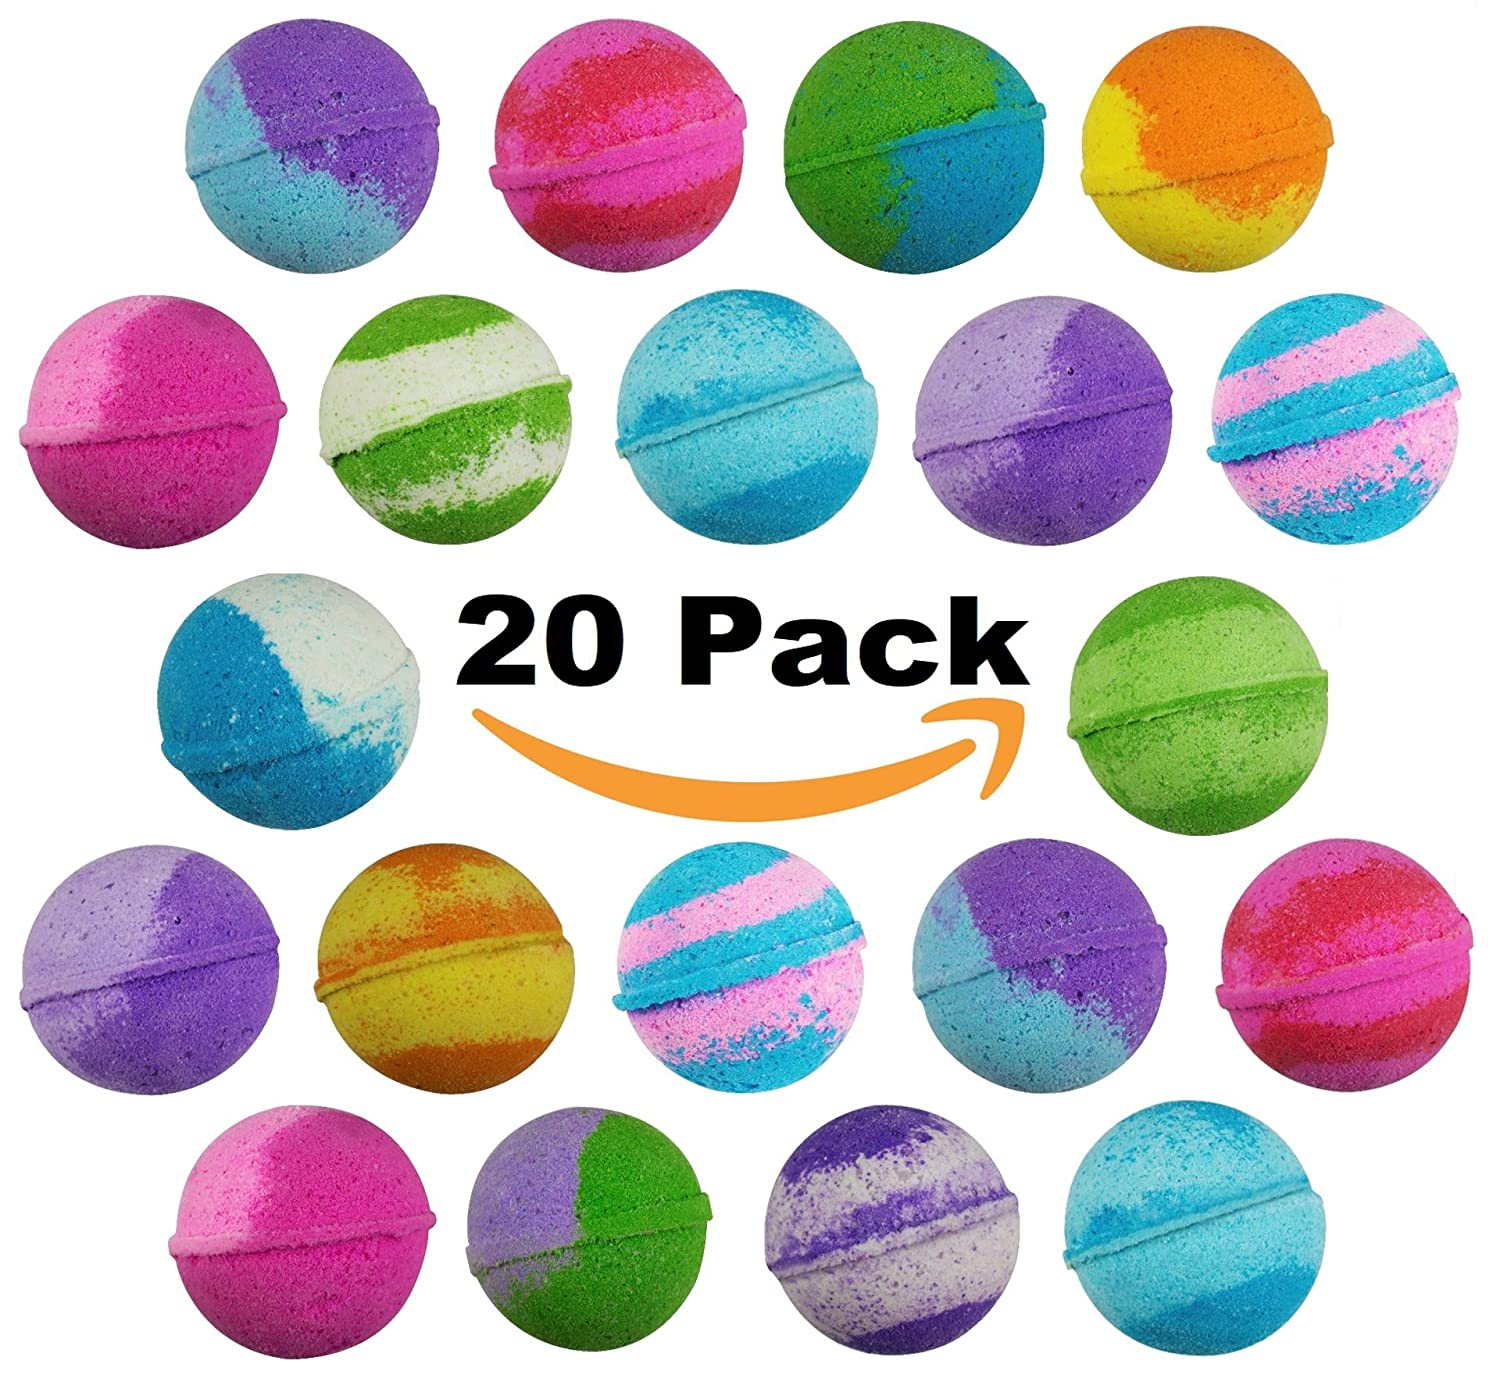 20 Pack of Best Selling Vegan Bulk Bath Bombs – Made with Organic Essential Oils Lush Spa Bath Fizzies for Moisturizing Dry Skin - Paraben & Gluten Free - Best Gift idea for Aromatherapy enthusiasts Sense Sation